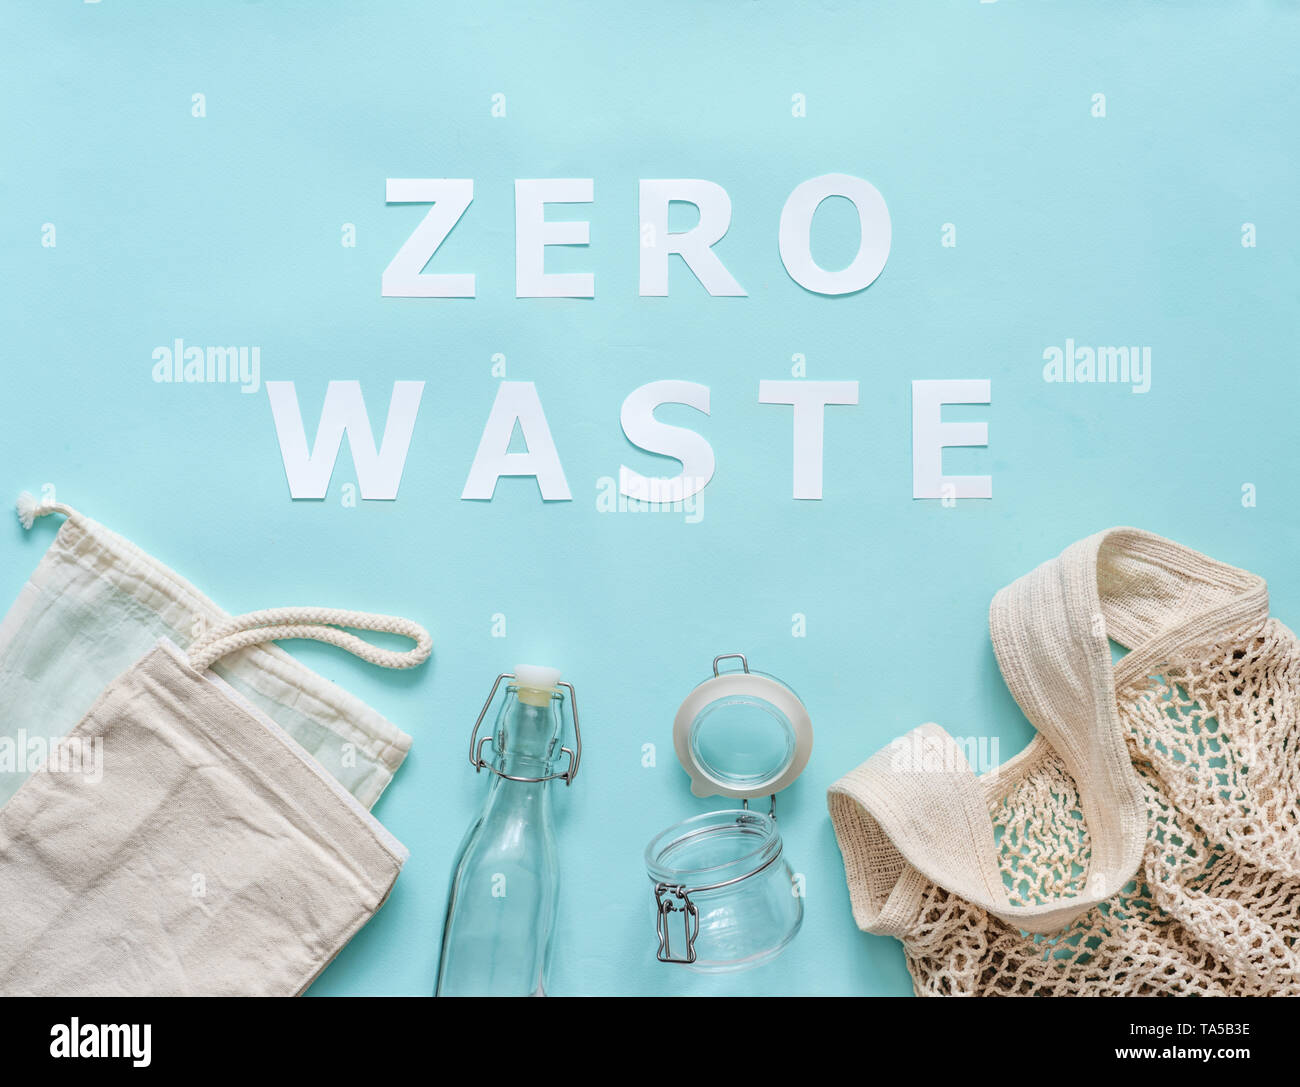 Zero waste concept. Textile eco bags, glass jar and bottle on blue background with Zero Waste white paper text. Eco friendly and reuse concept. Top vi - Stock Image